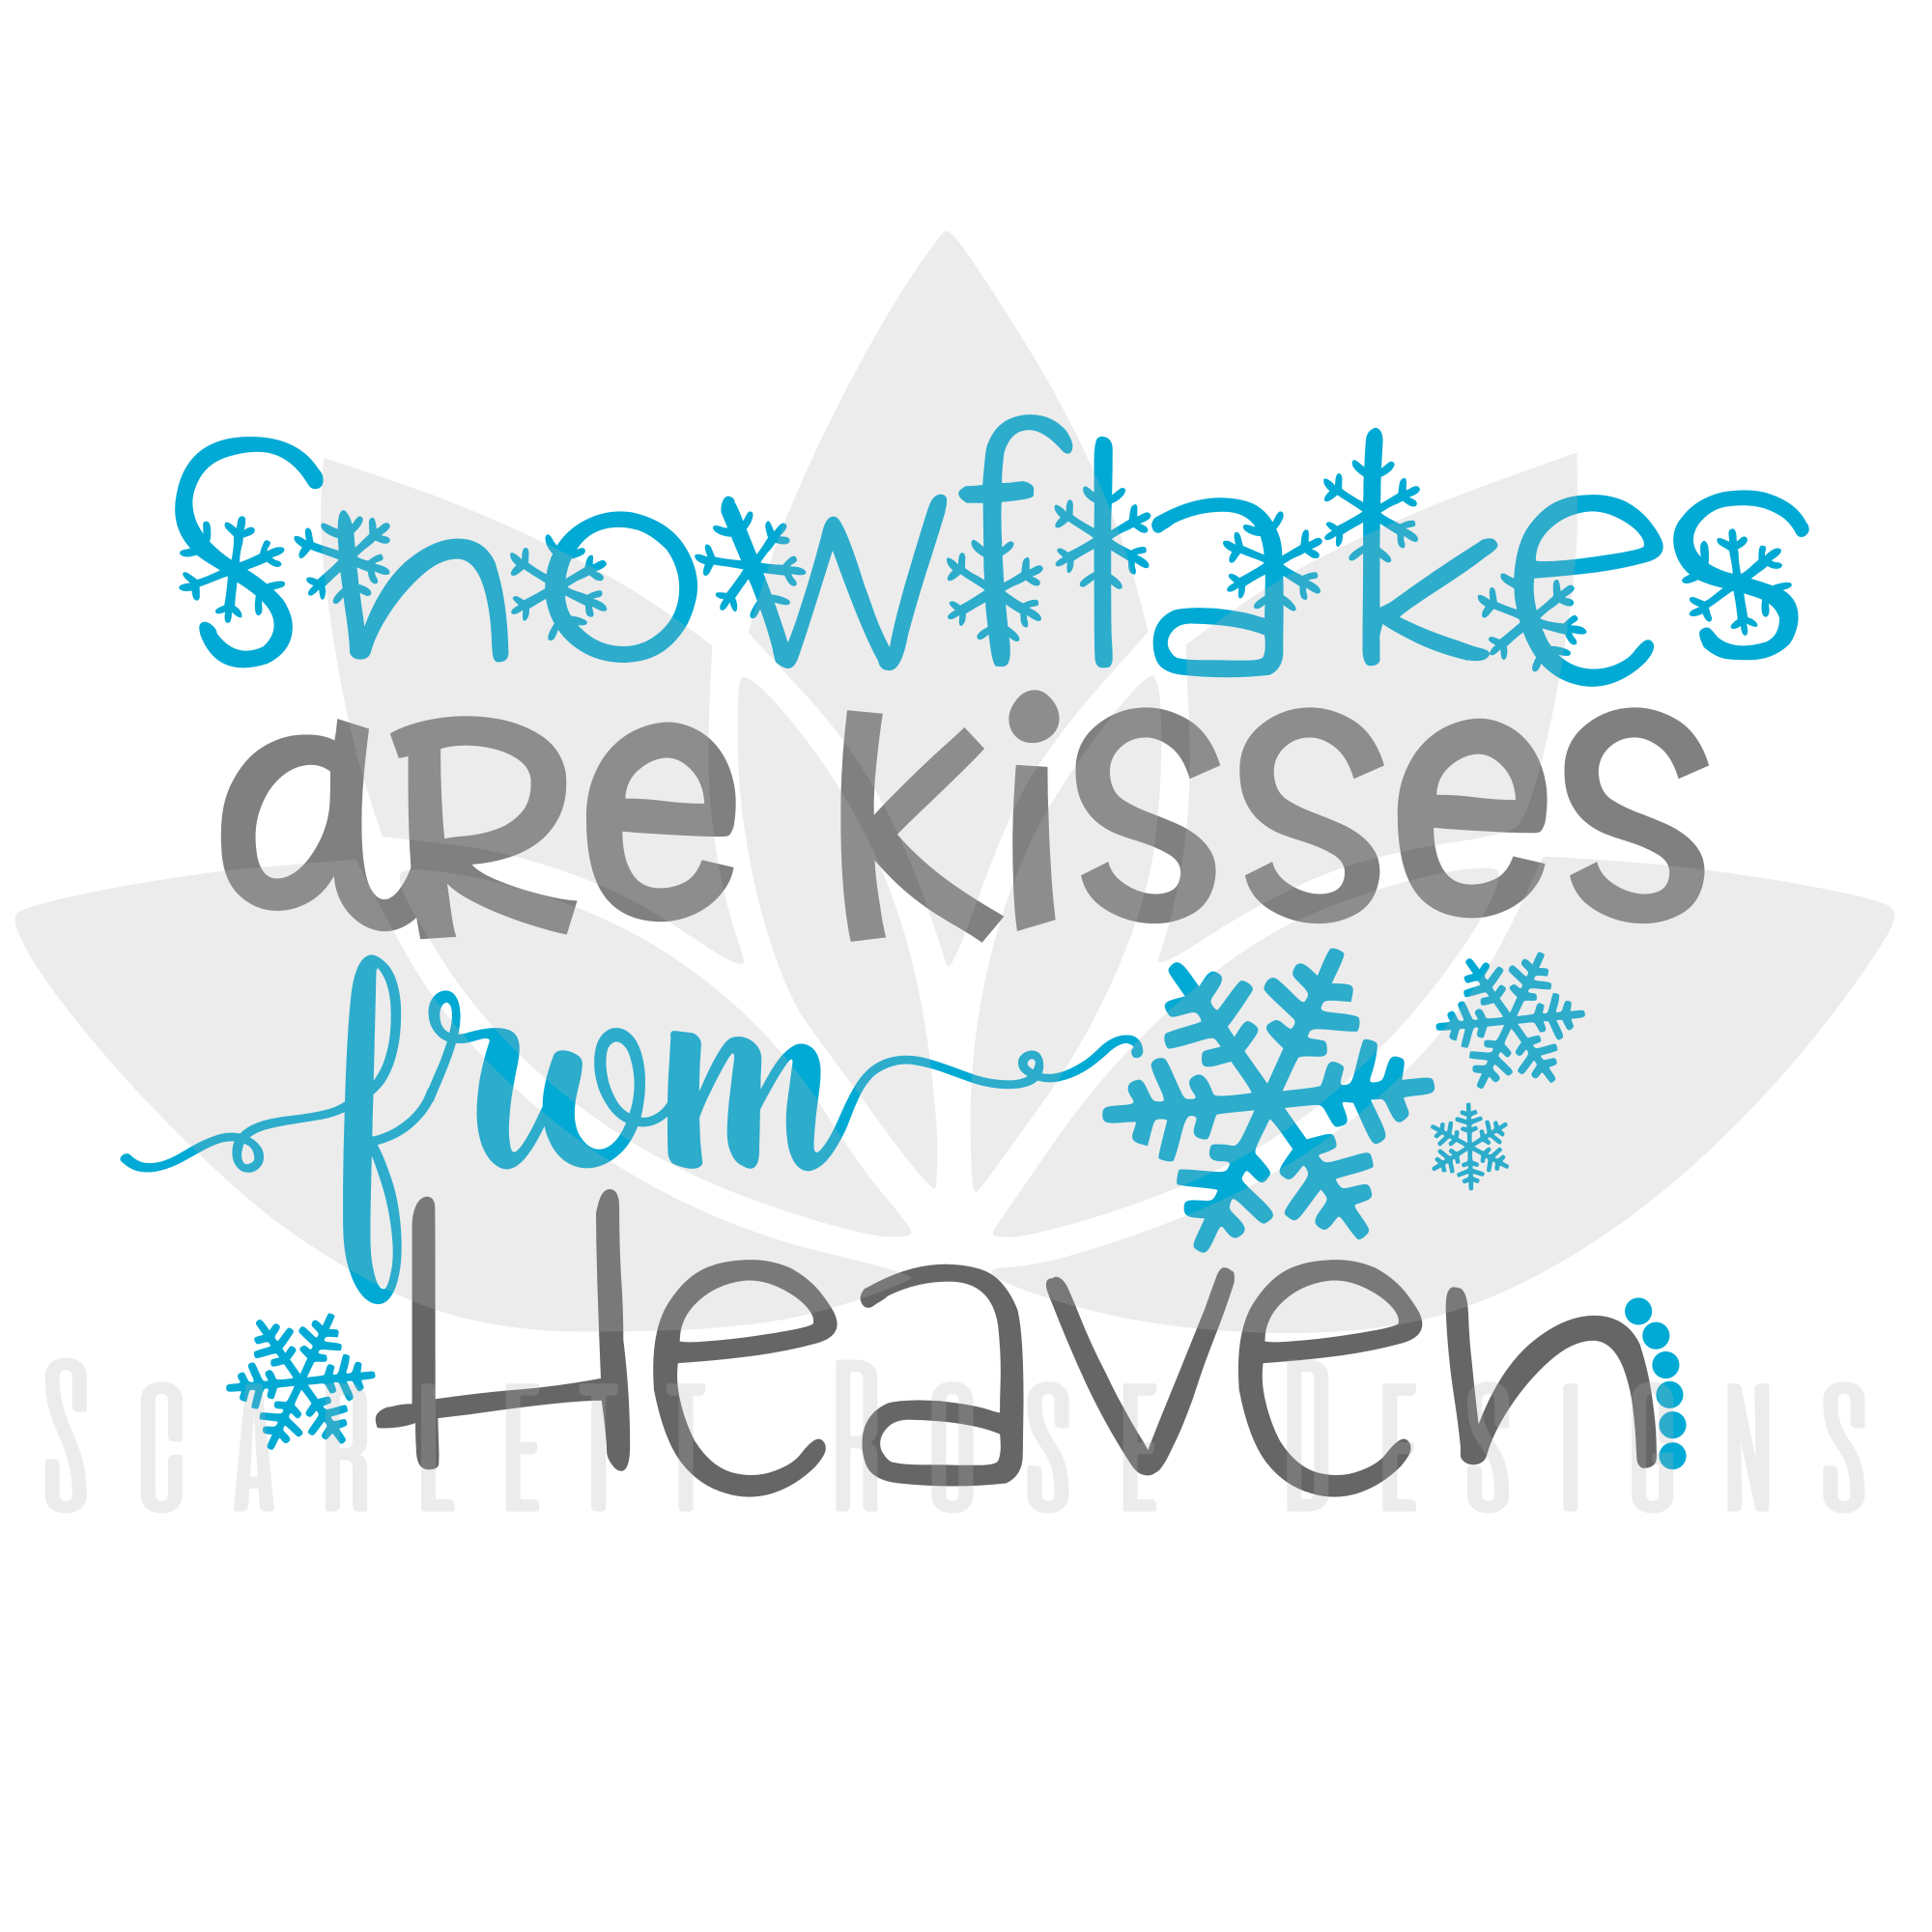 Christmas Svg Cut File Snowflakes Are Kisses From Heaven Scarlett Rose Designs